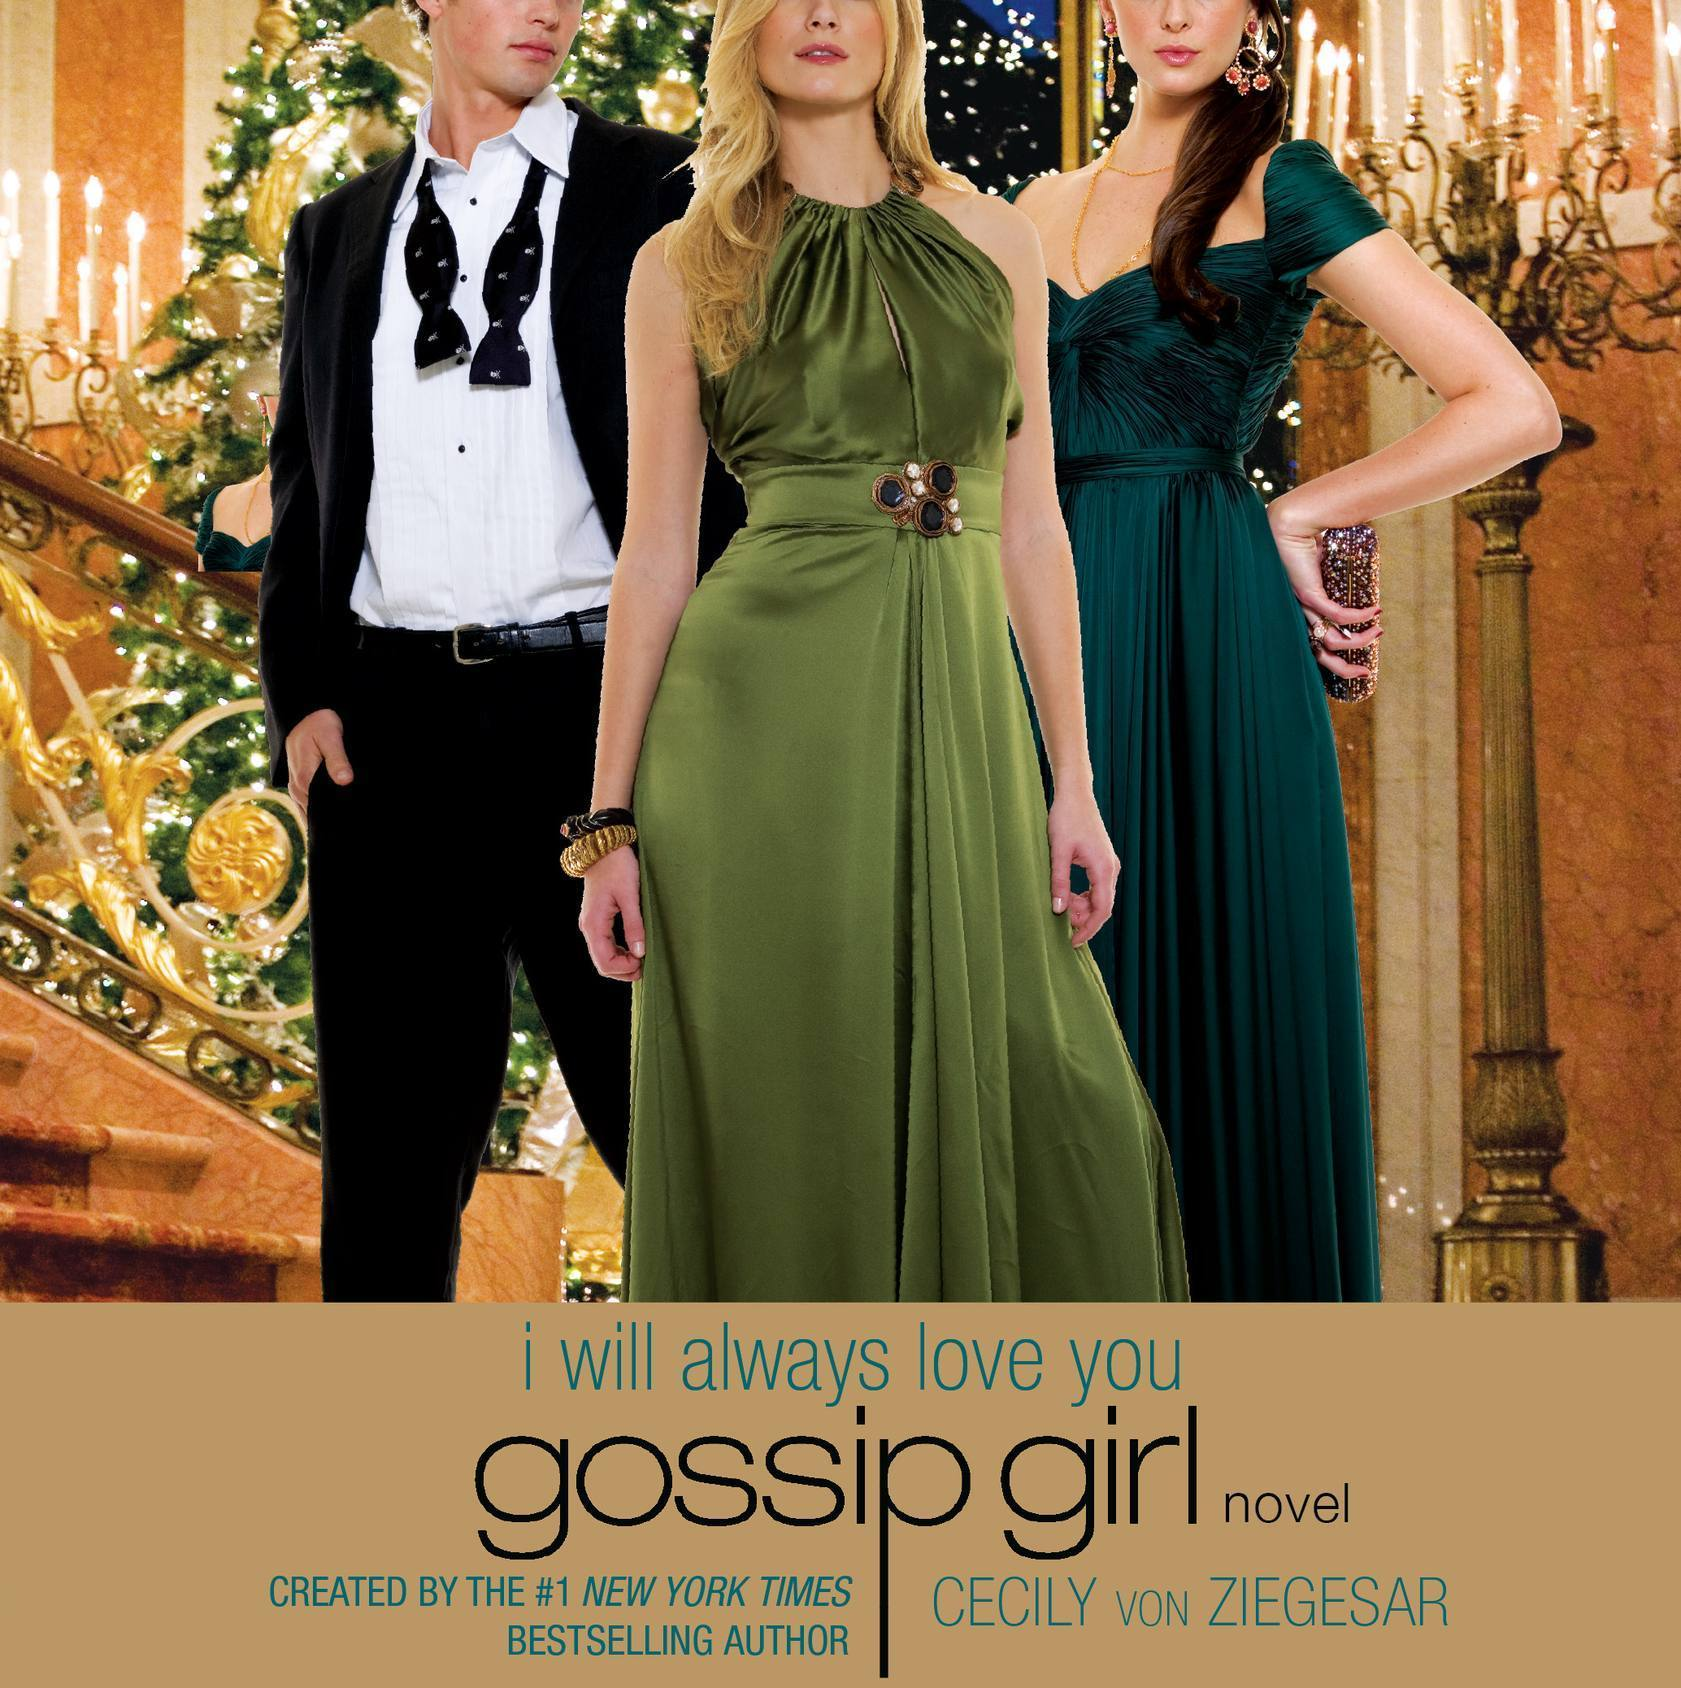 I Will Always Love You - Gossip Girl Book Series Photo